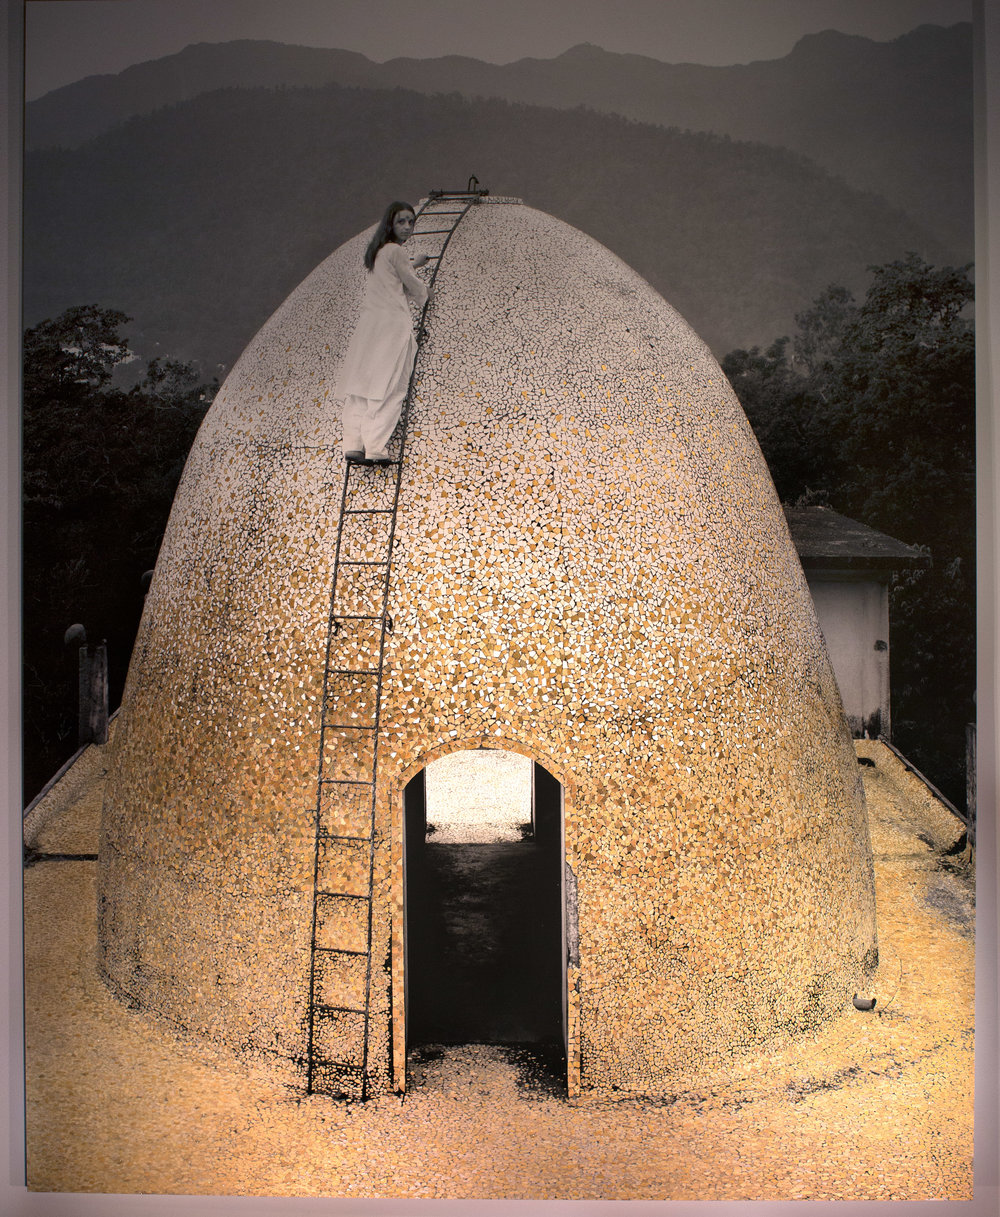 Dome, Rishikesh, India, 2015